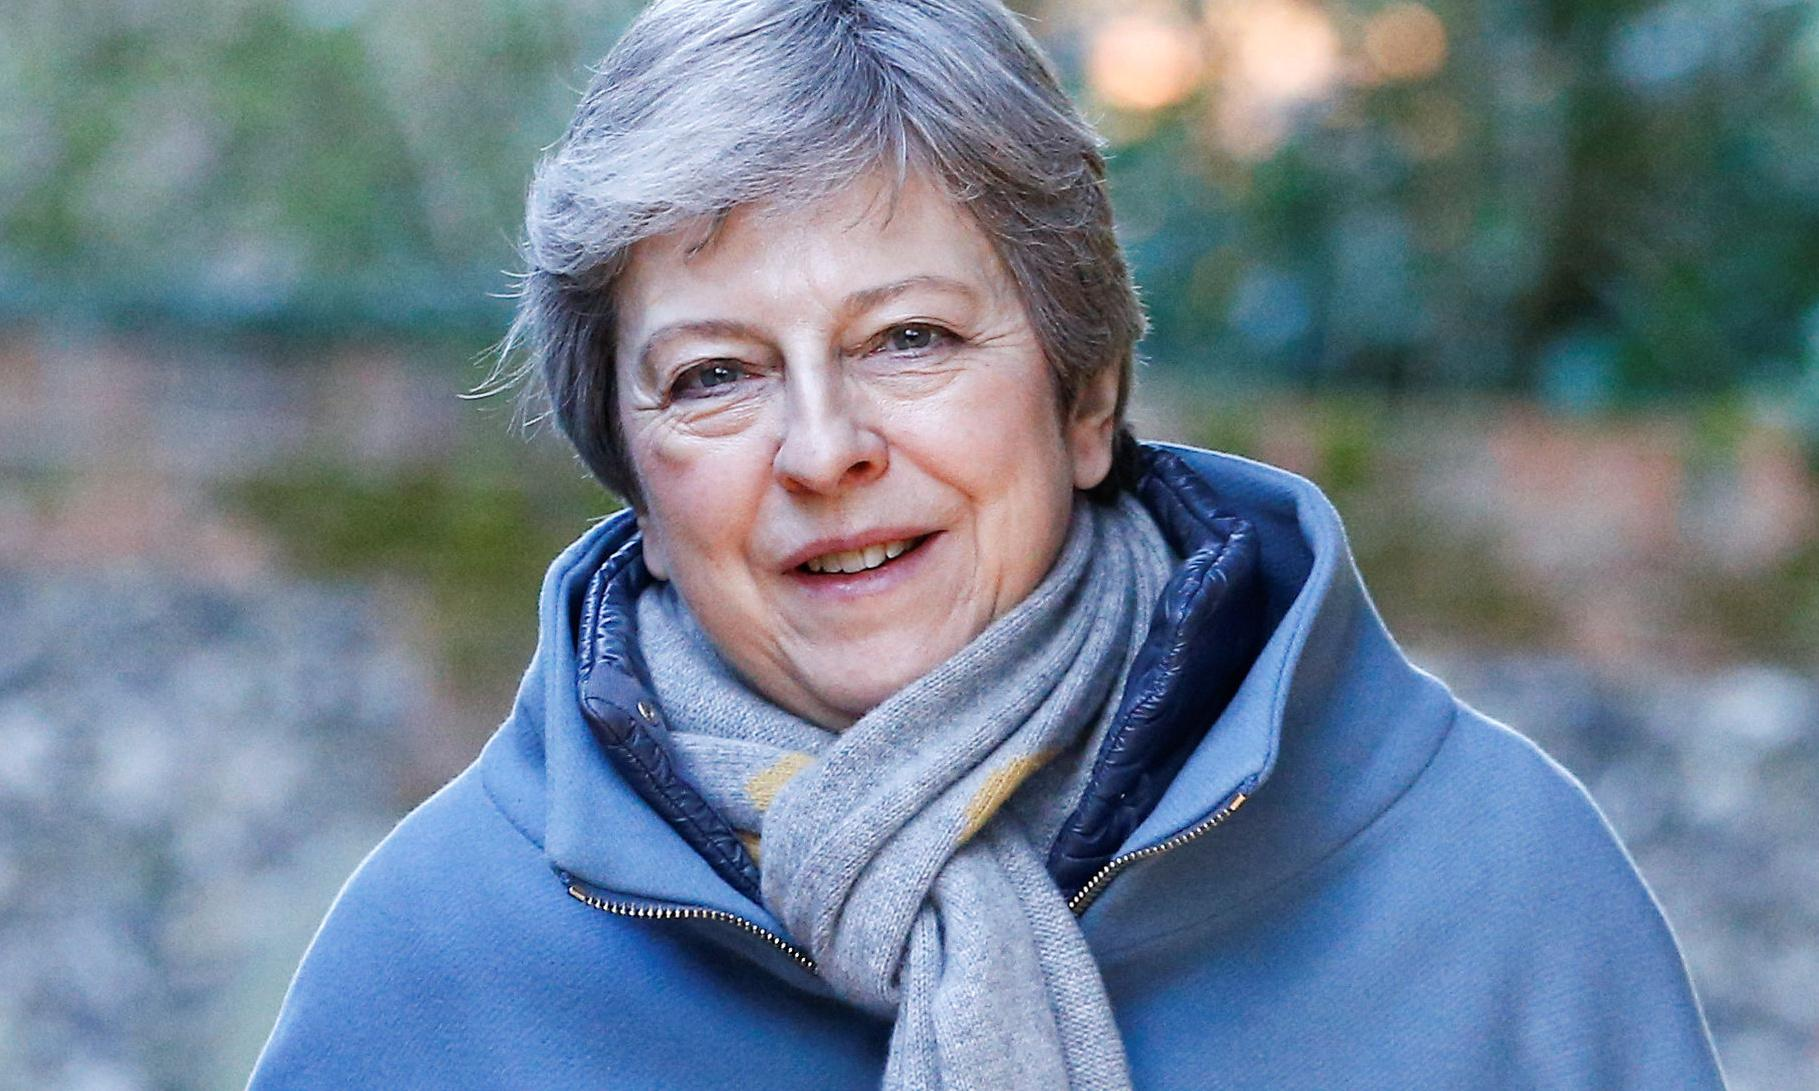 May in make-or-break bid to gain DUP support for her Brexit deal